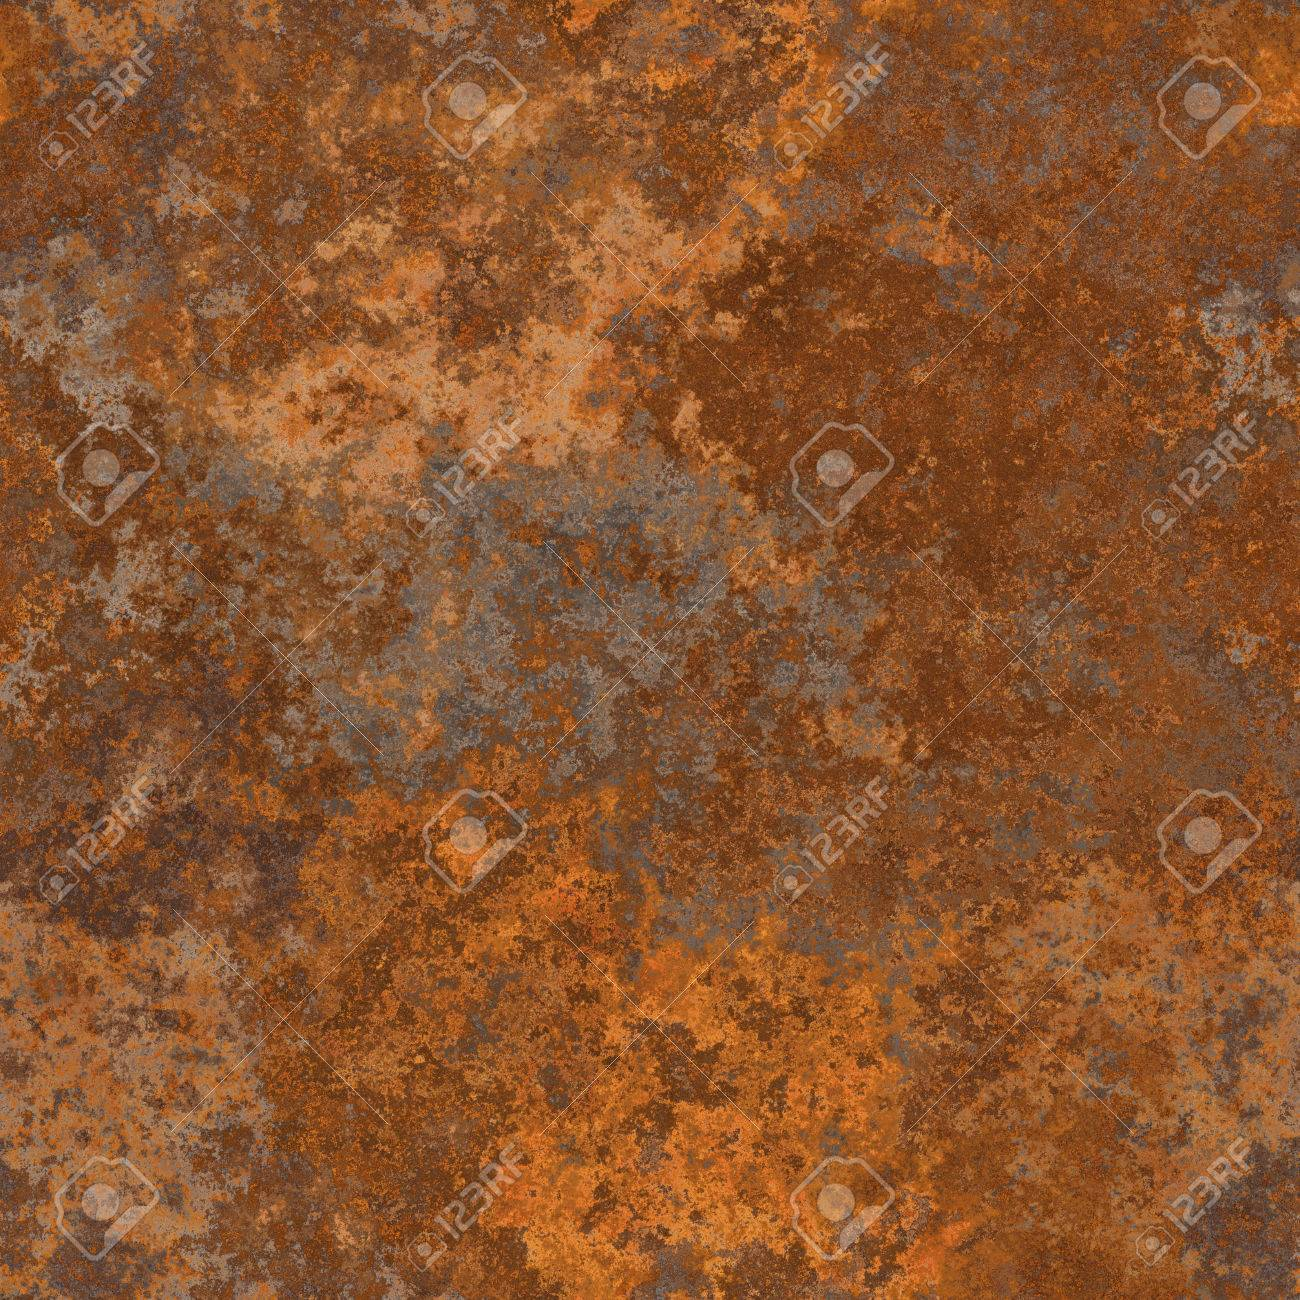 Seamless Old Rusty Metal Texture A High Resolution Stock Photo